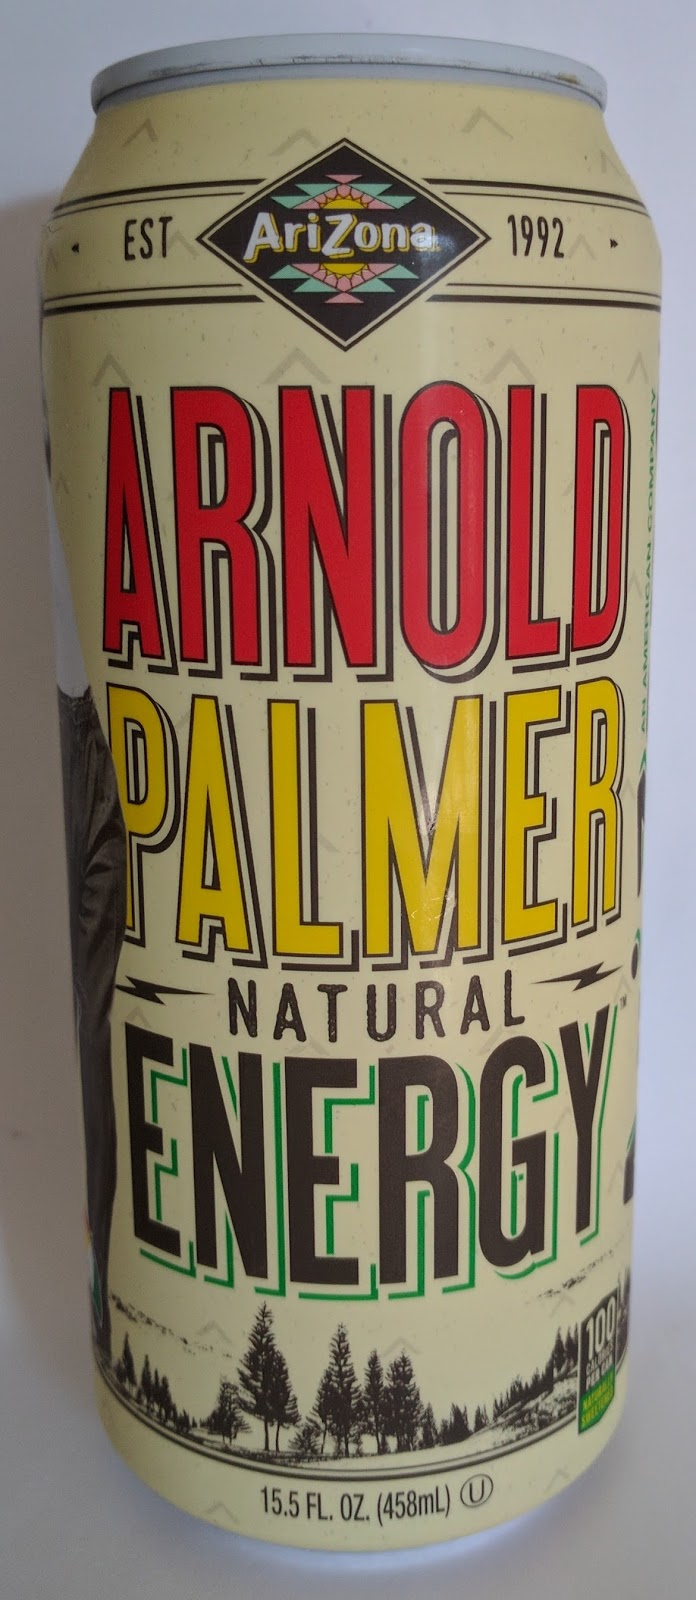 Caffeine King: Arnold Palmer Natural Energy Drink Review